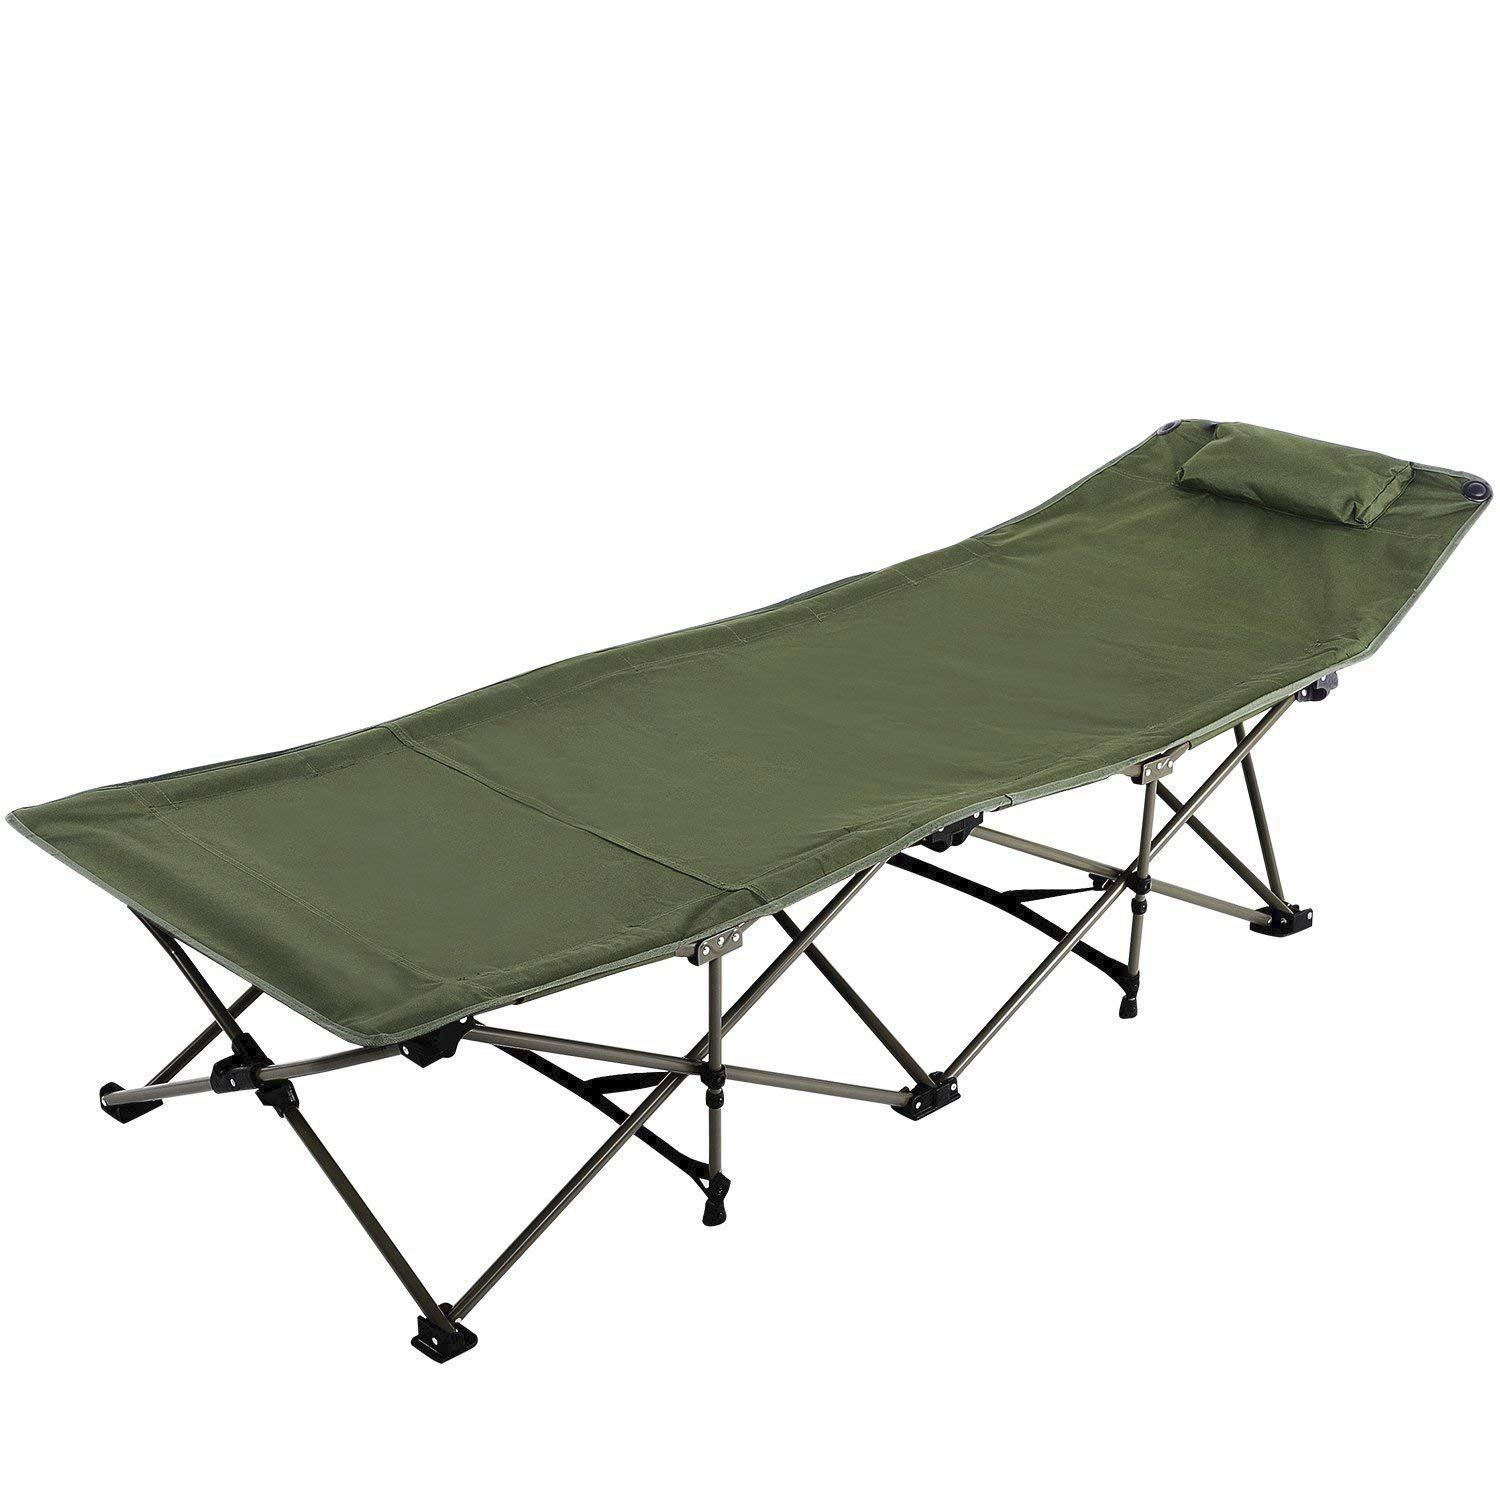 REDCAMP Folding Camping Cot for Adults, Portable Wide Camp Cots Bed for Sleeping, Lightweight for Outdoor Office Use, Green XL by REDCAMP